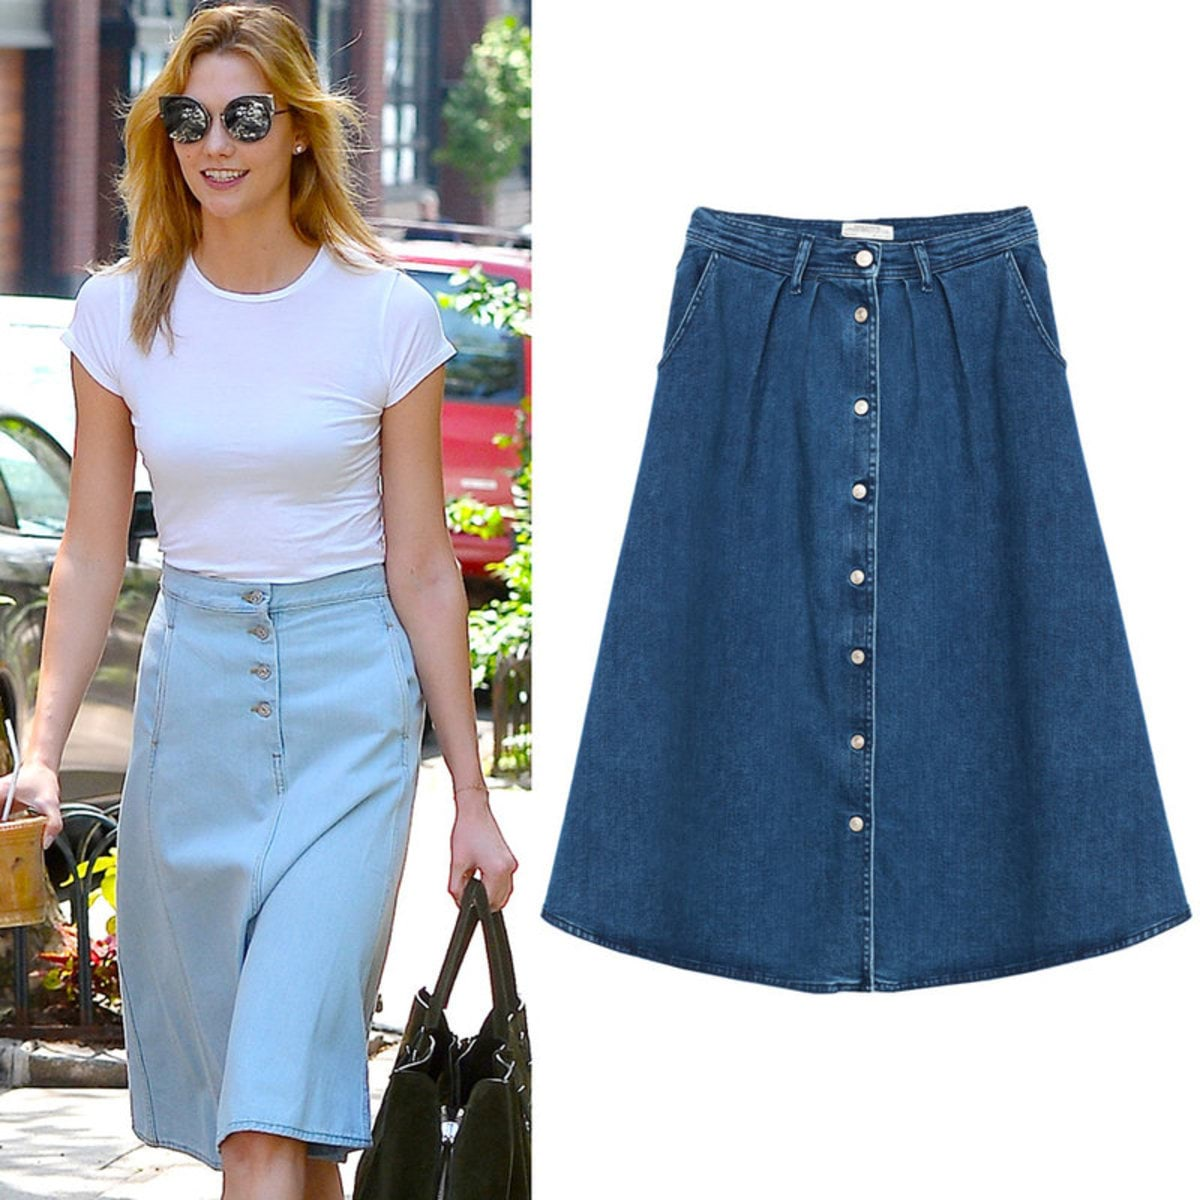 081016-denim-skirt-karlie